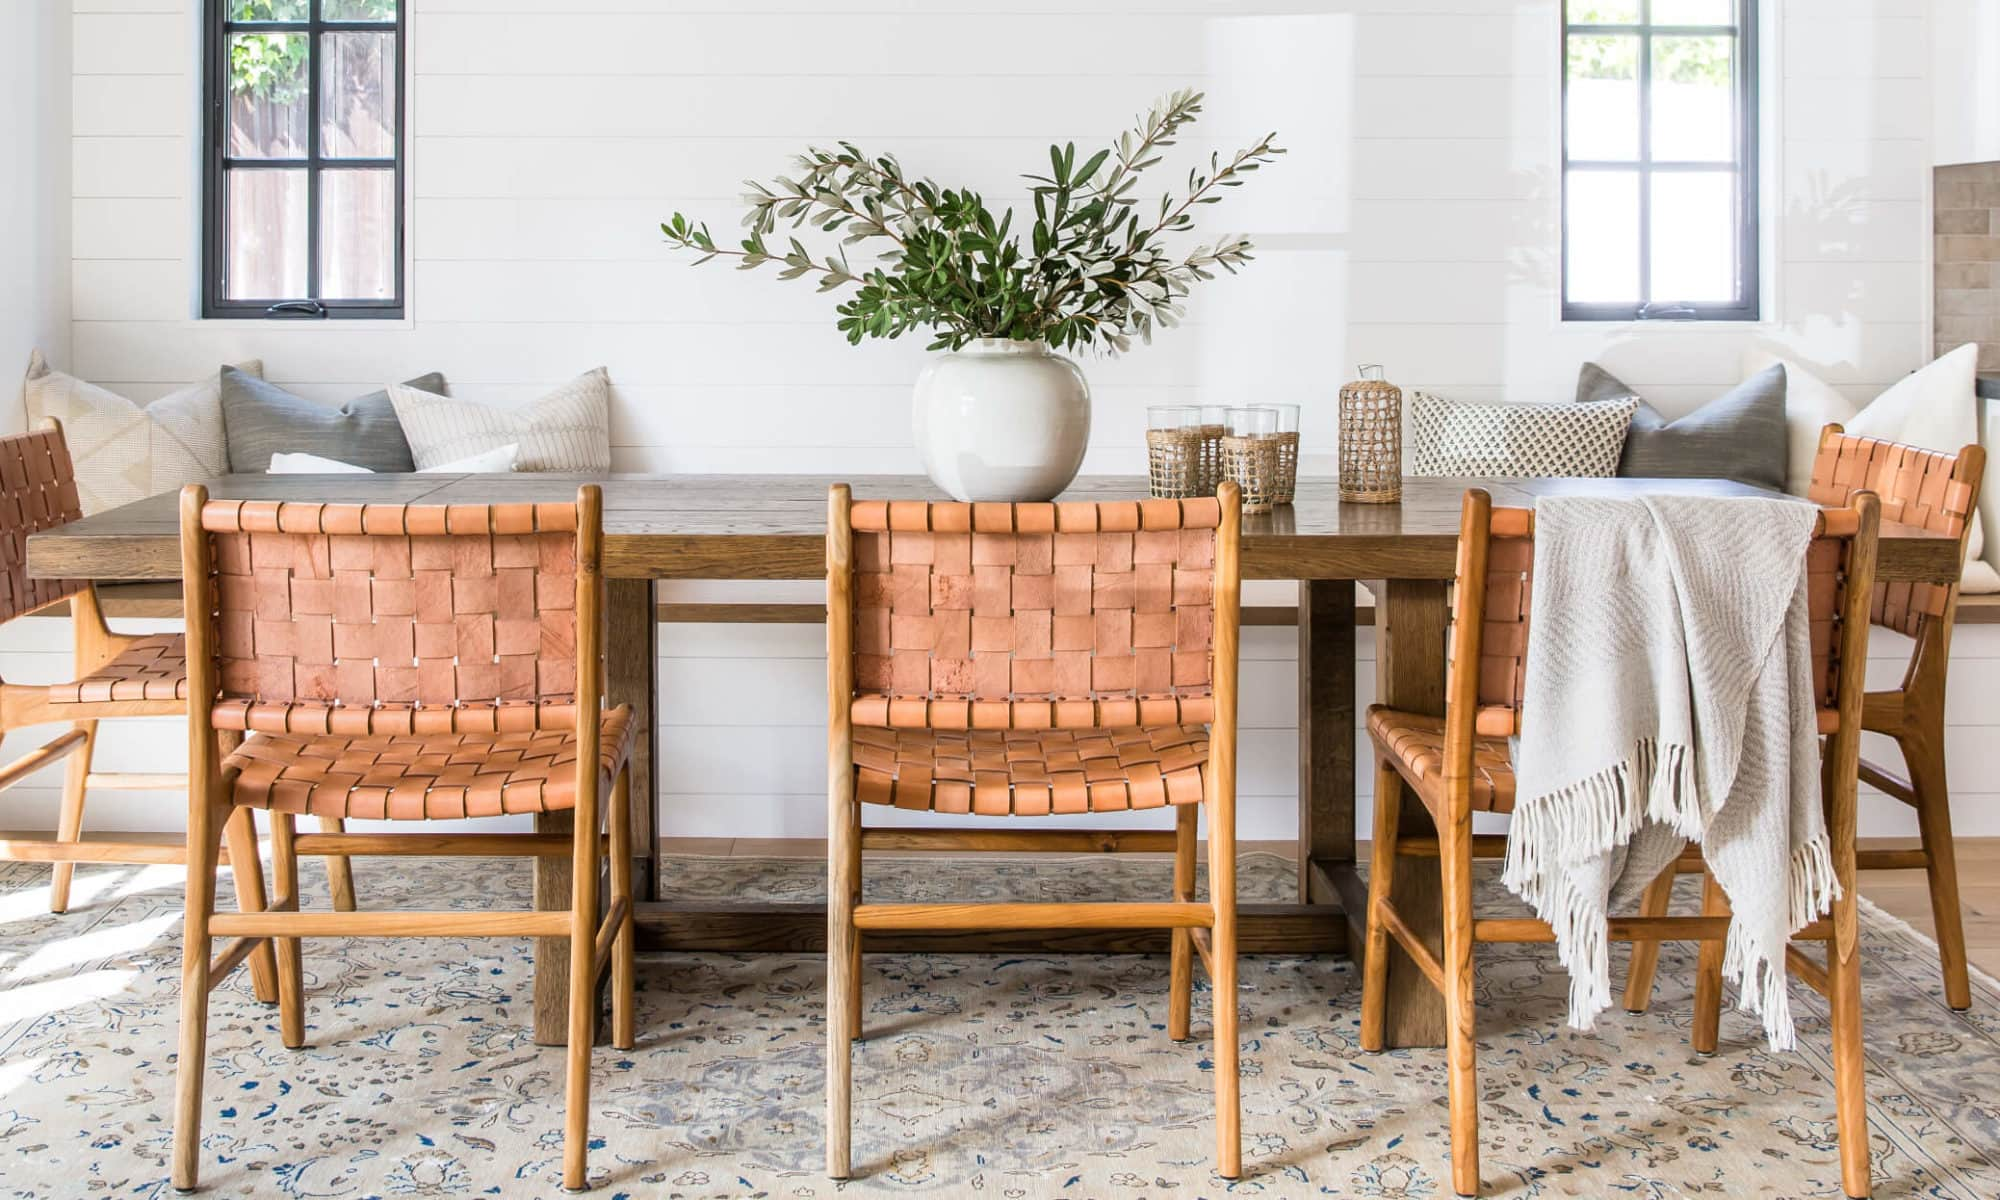 california cool interior design dining room with woven leather dining chairs and rustic table